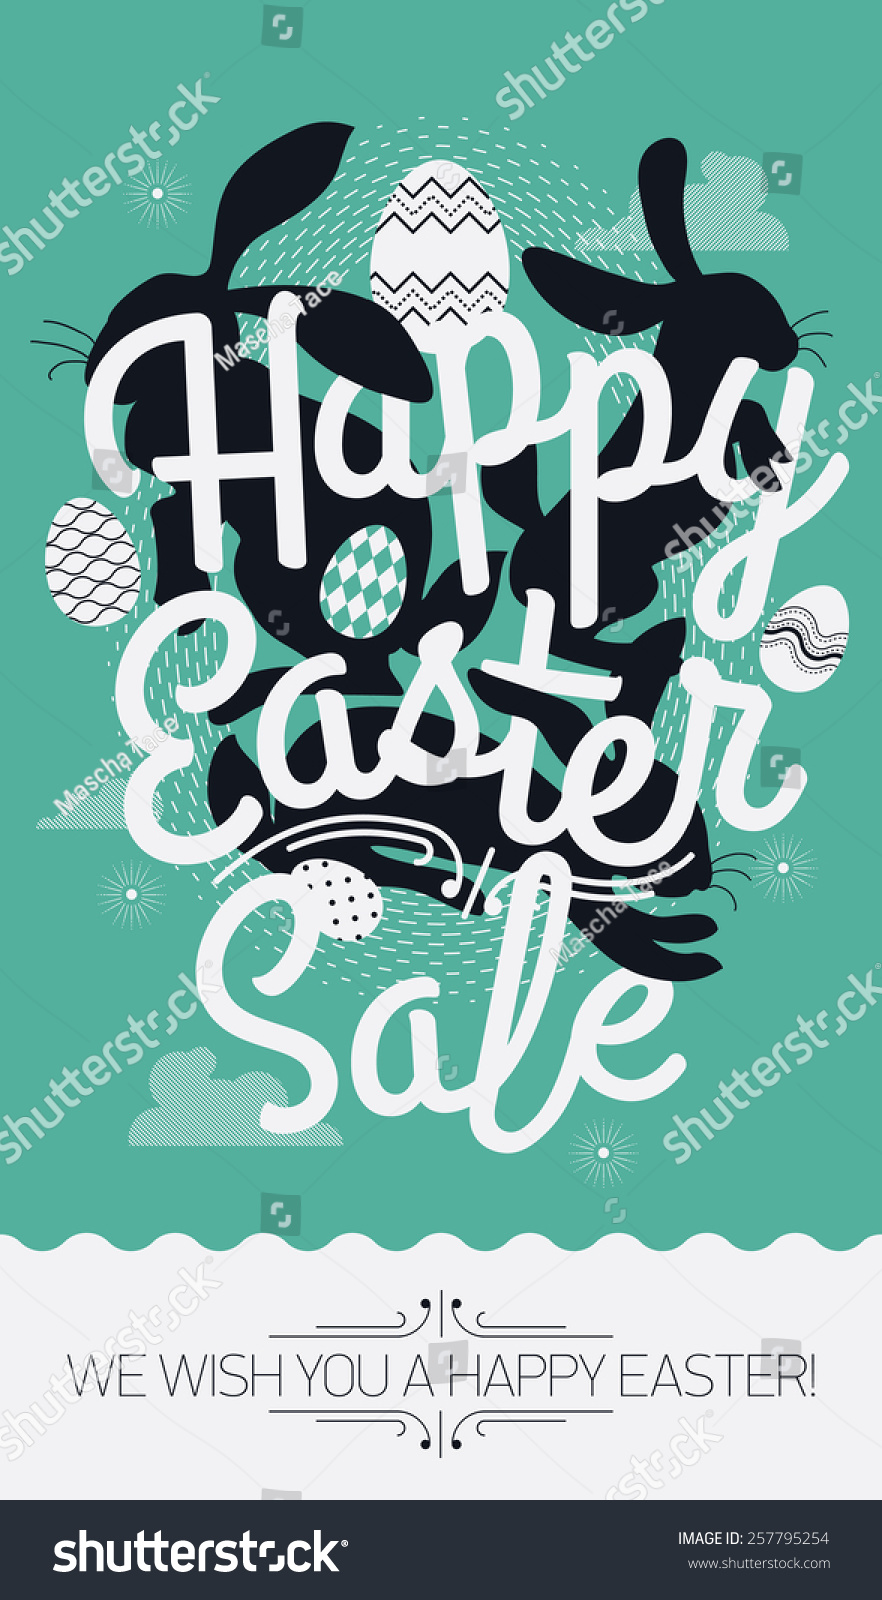 Poster design sample - Cool Vector Concept Printable Poster Or Banner Design On Happy Easter Sale With Sample Text